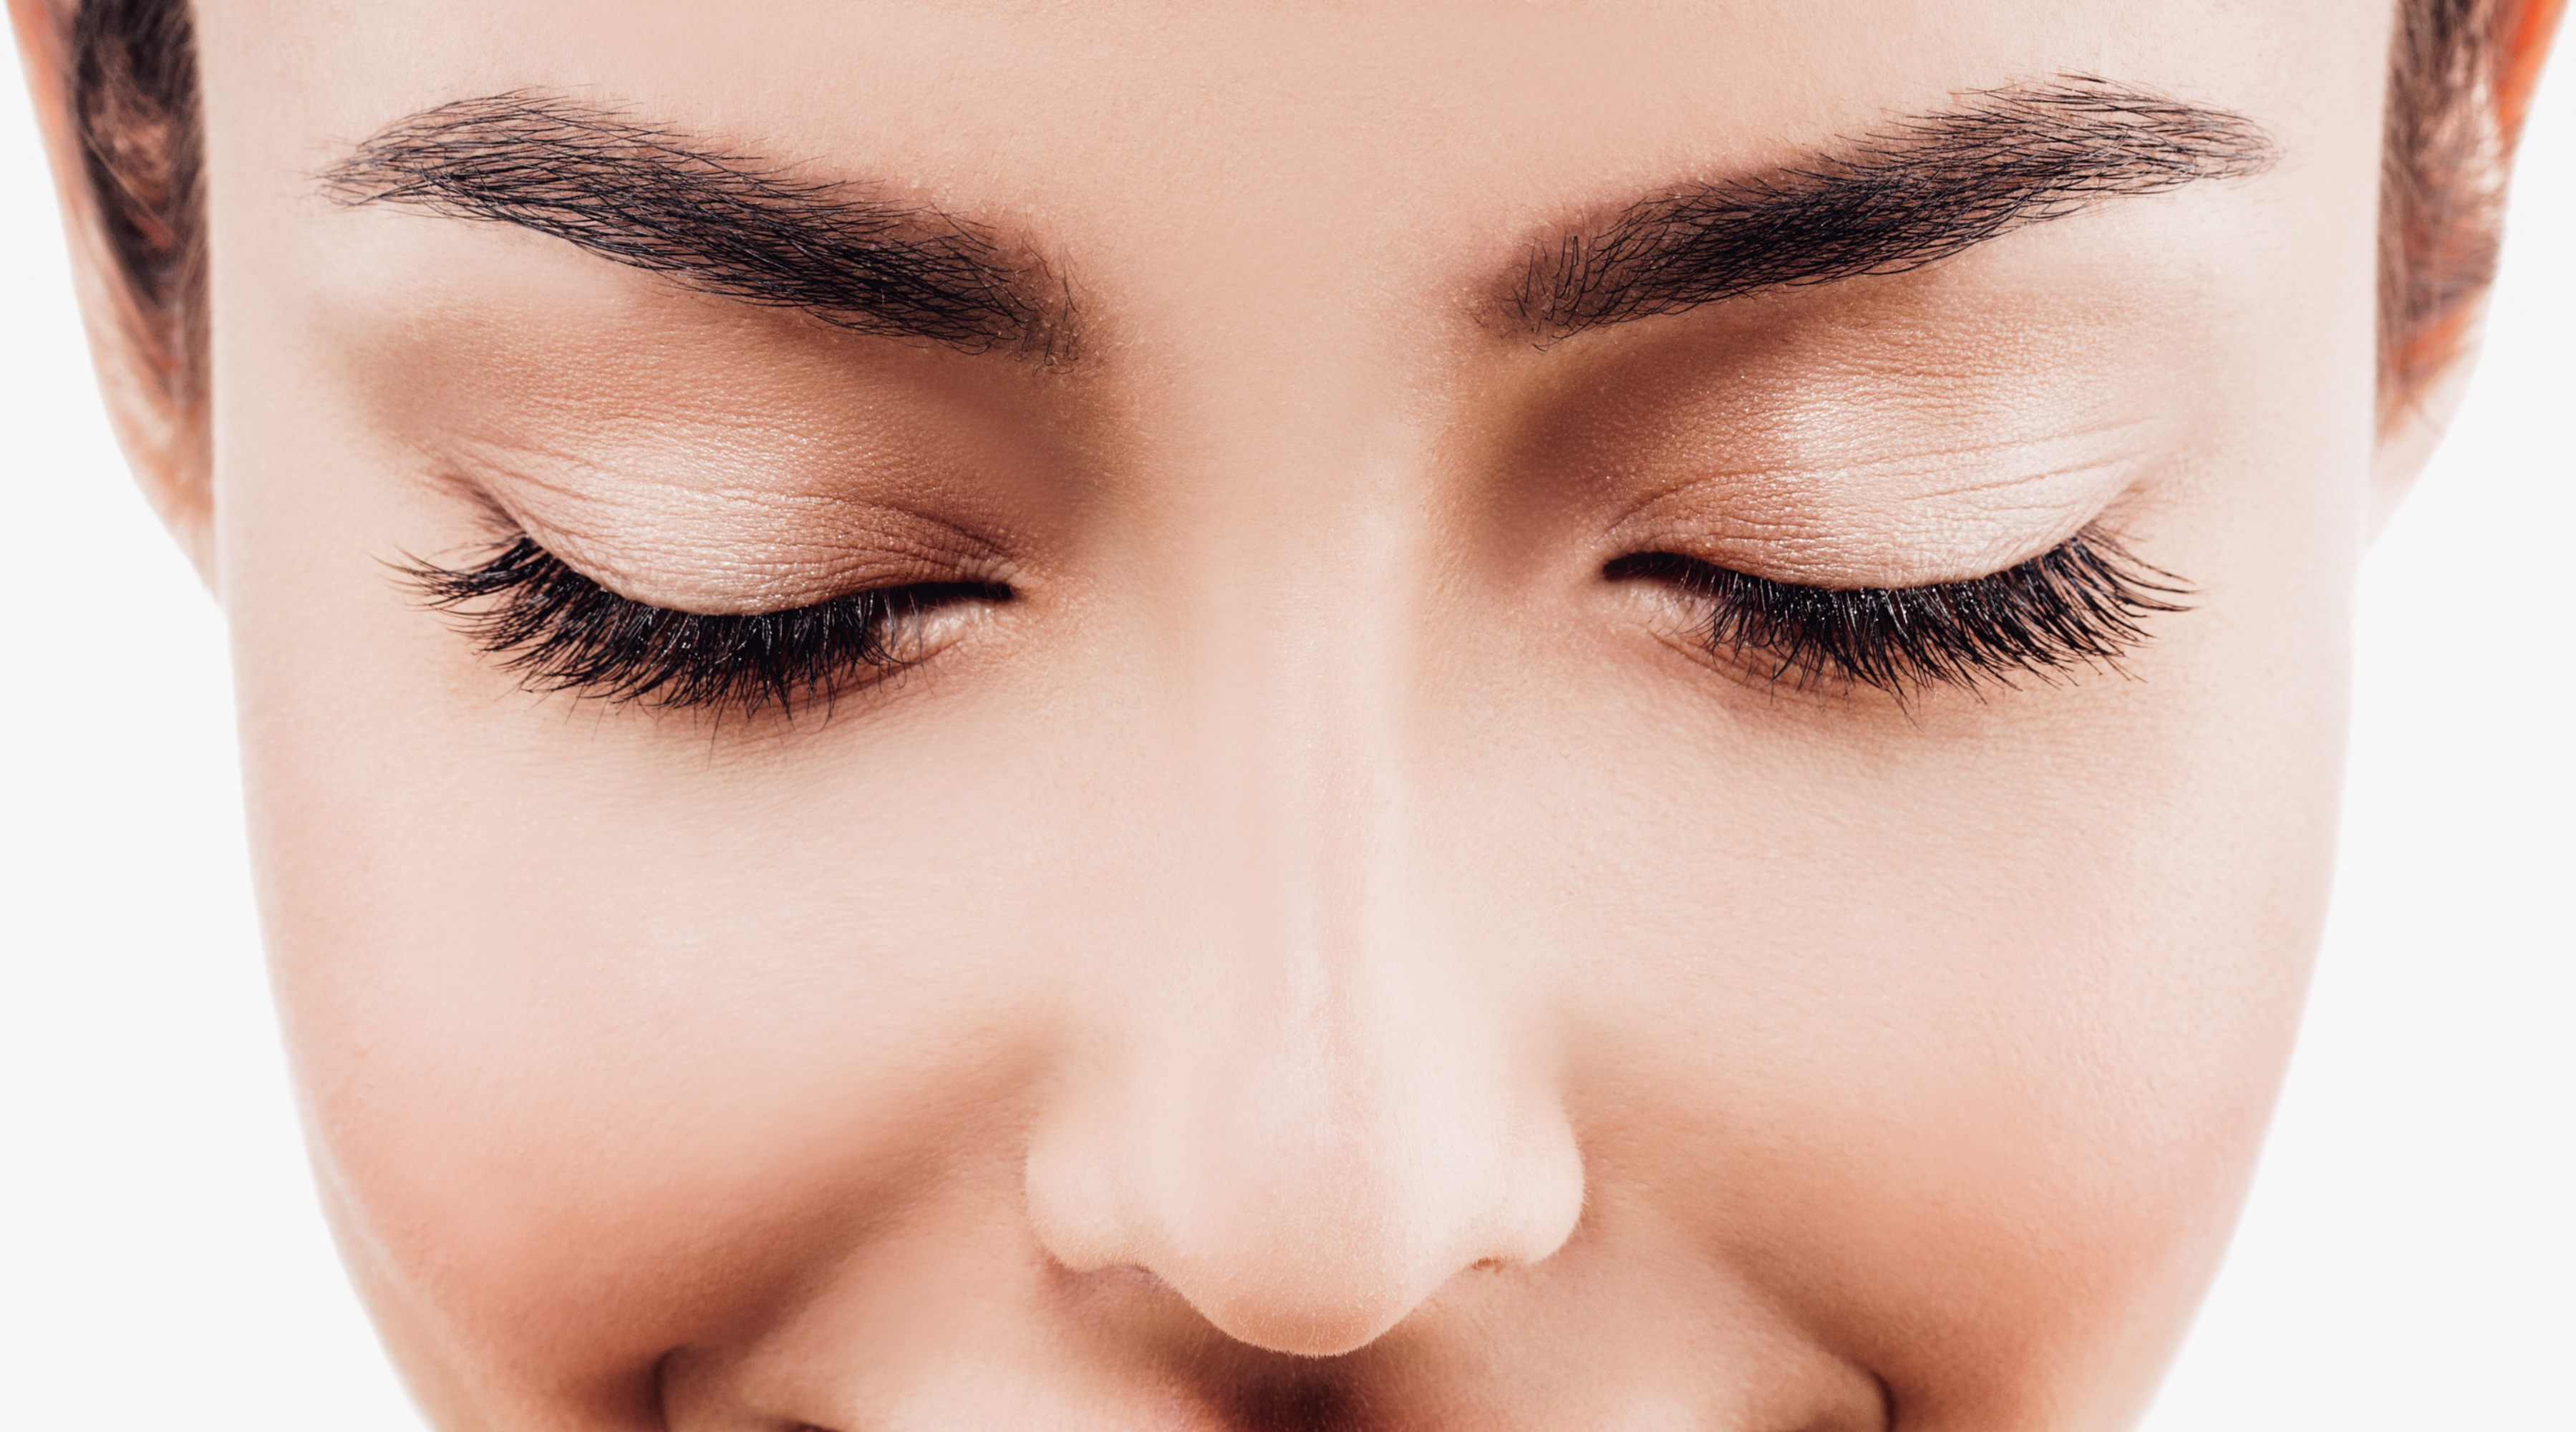 From trendy to timeless looks, here's how to achieve flawless brows